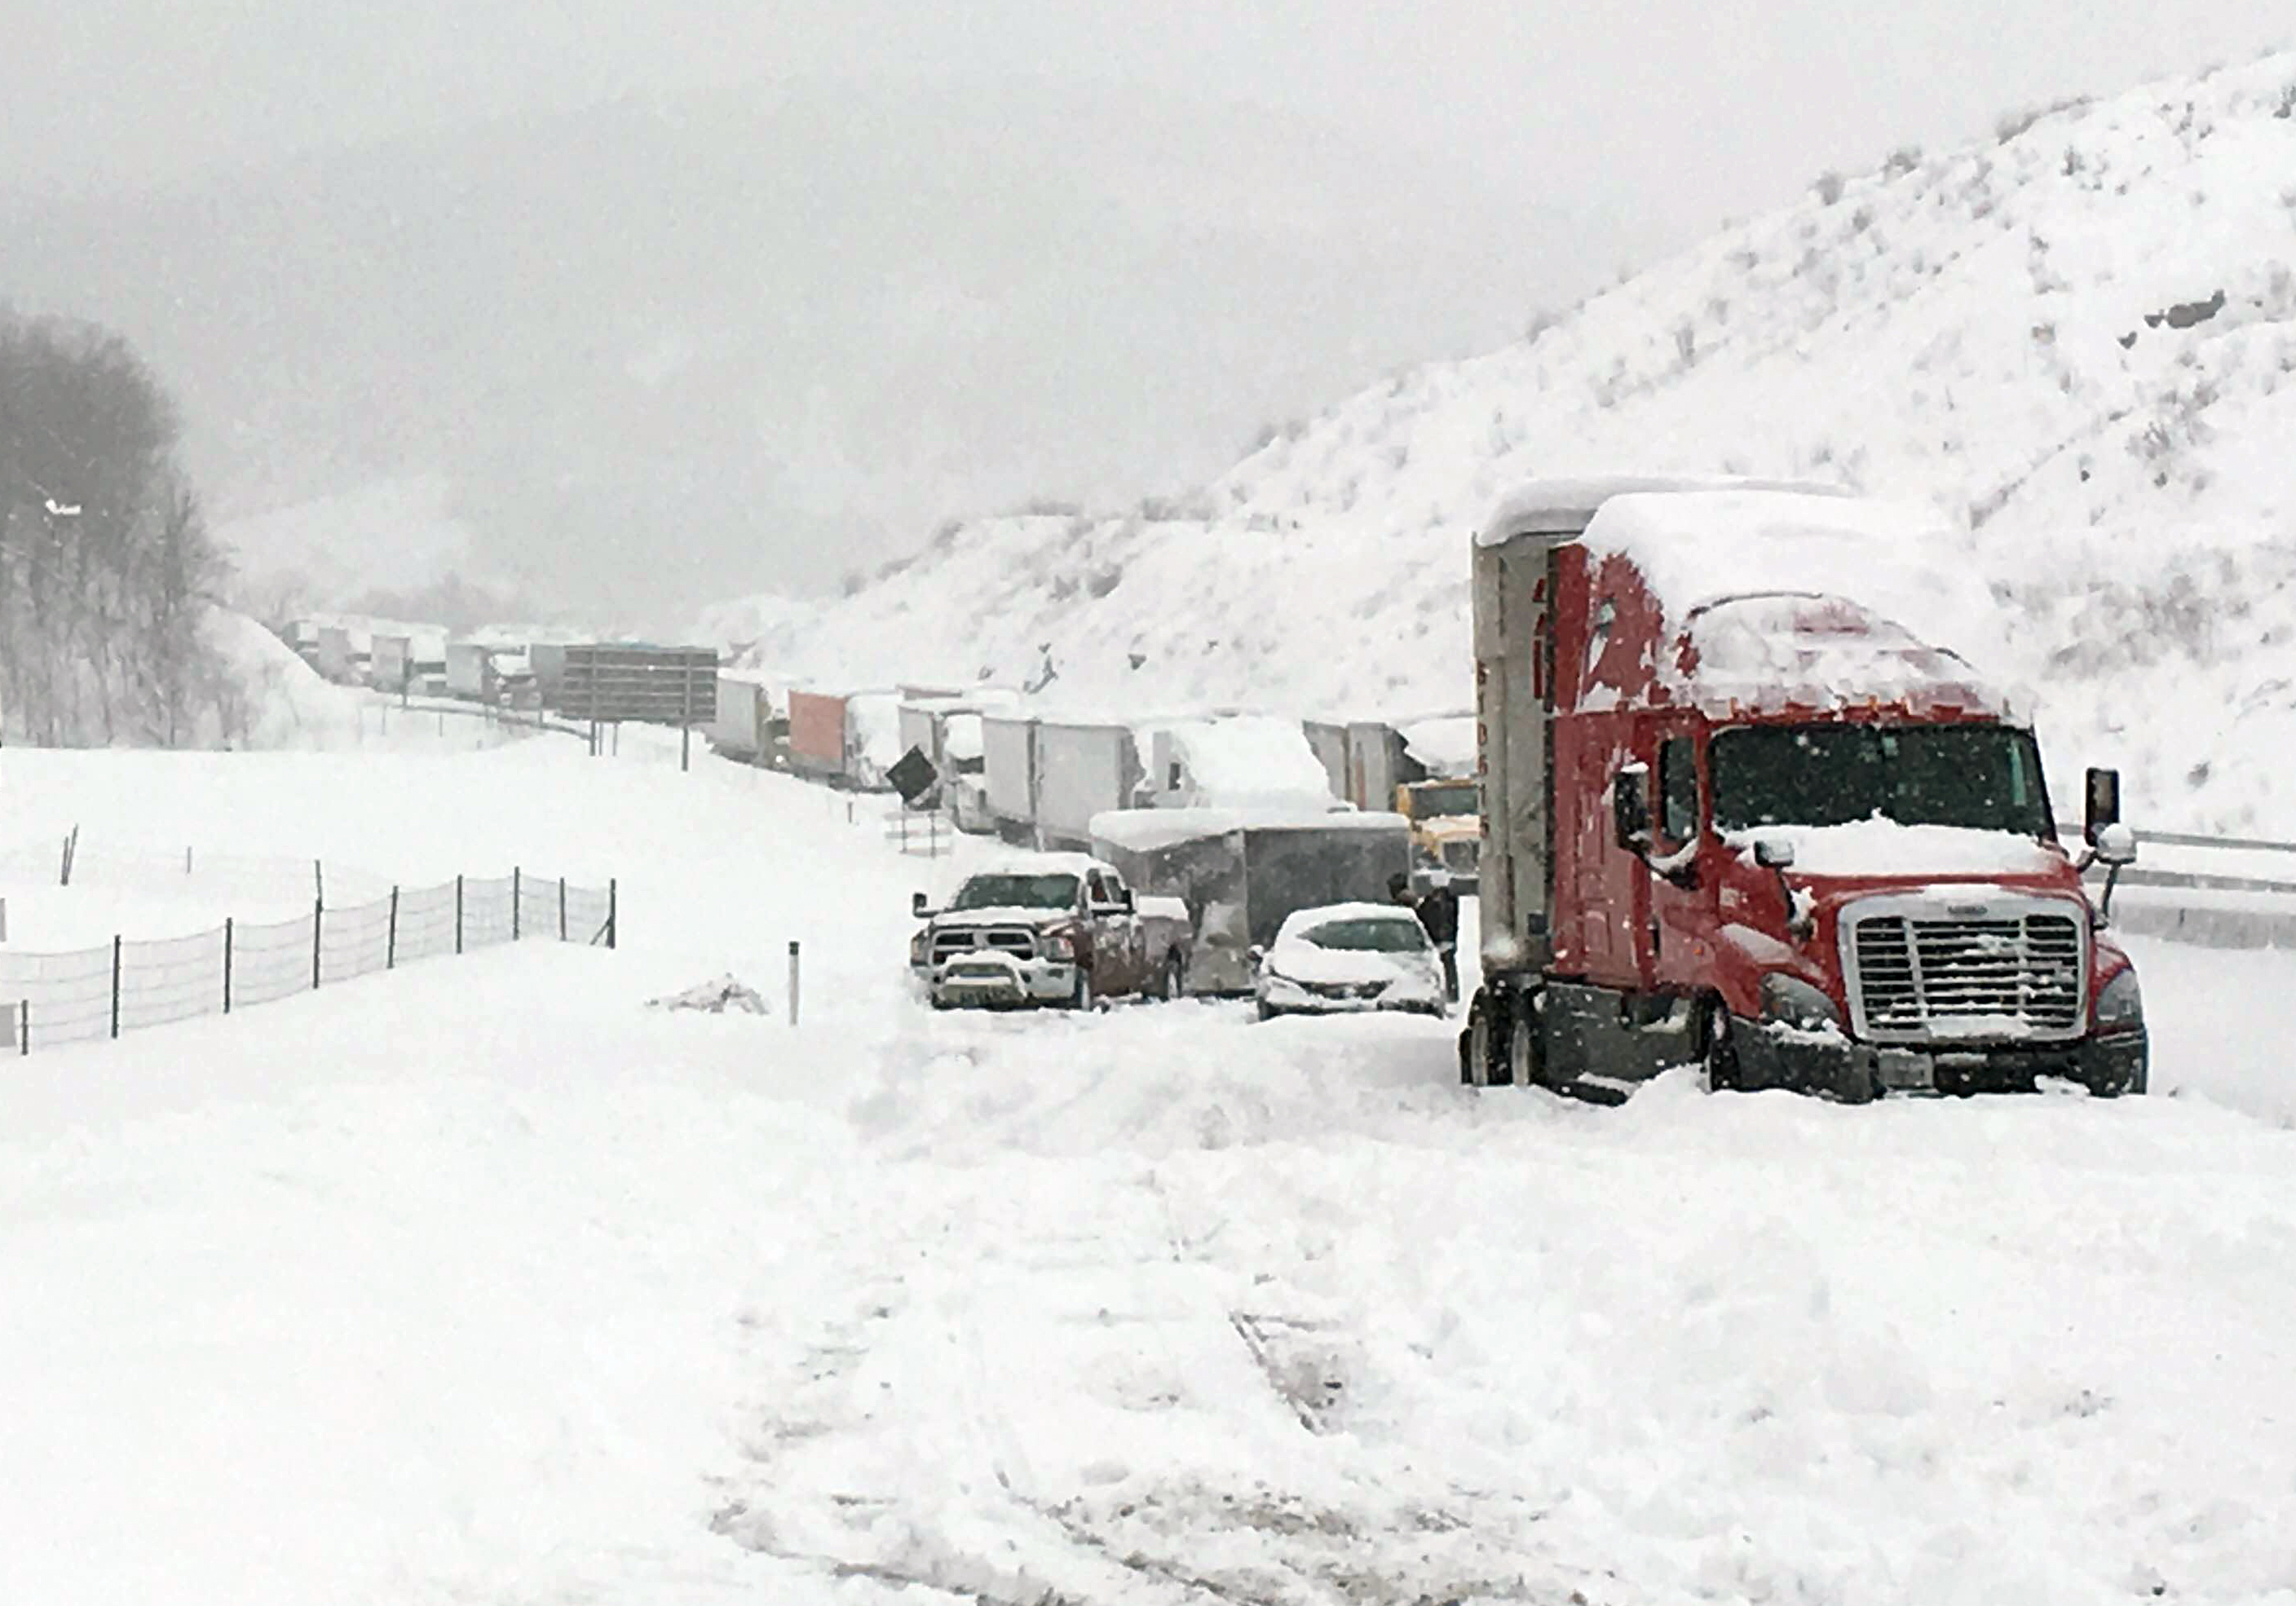 AP Photo - In this photo provided by Michael Watkins, traffic is at a standstill on the Pennsylvania Turnpike near Bedford, Pa., Saturday, Jan. 23, 2016. The Duquesne men's basketball team and Temple University's women's gymnastics team are stuck on the Turnpike due to treacherous weather conditions. A mammoth winter storm crawled up the U.S. East Coast on Saturday, making roads impassable, shutting down mass transit, and bringing Washington and New York City to a standstill.